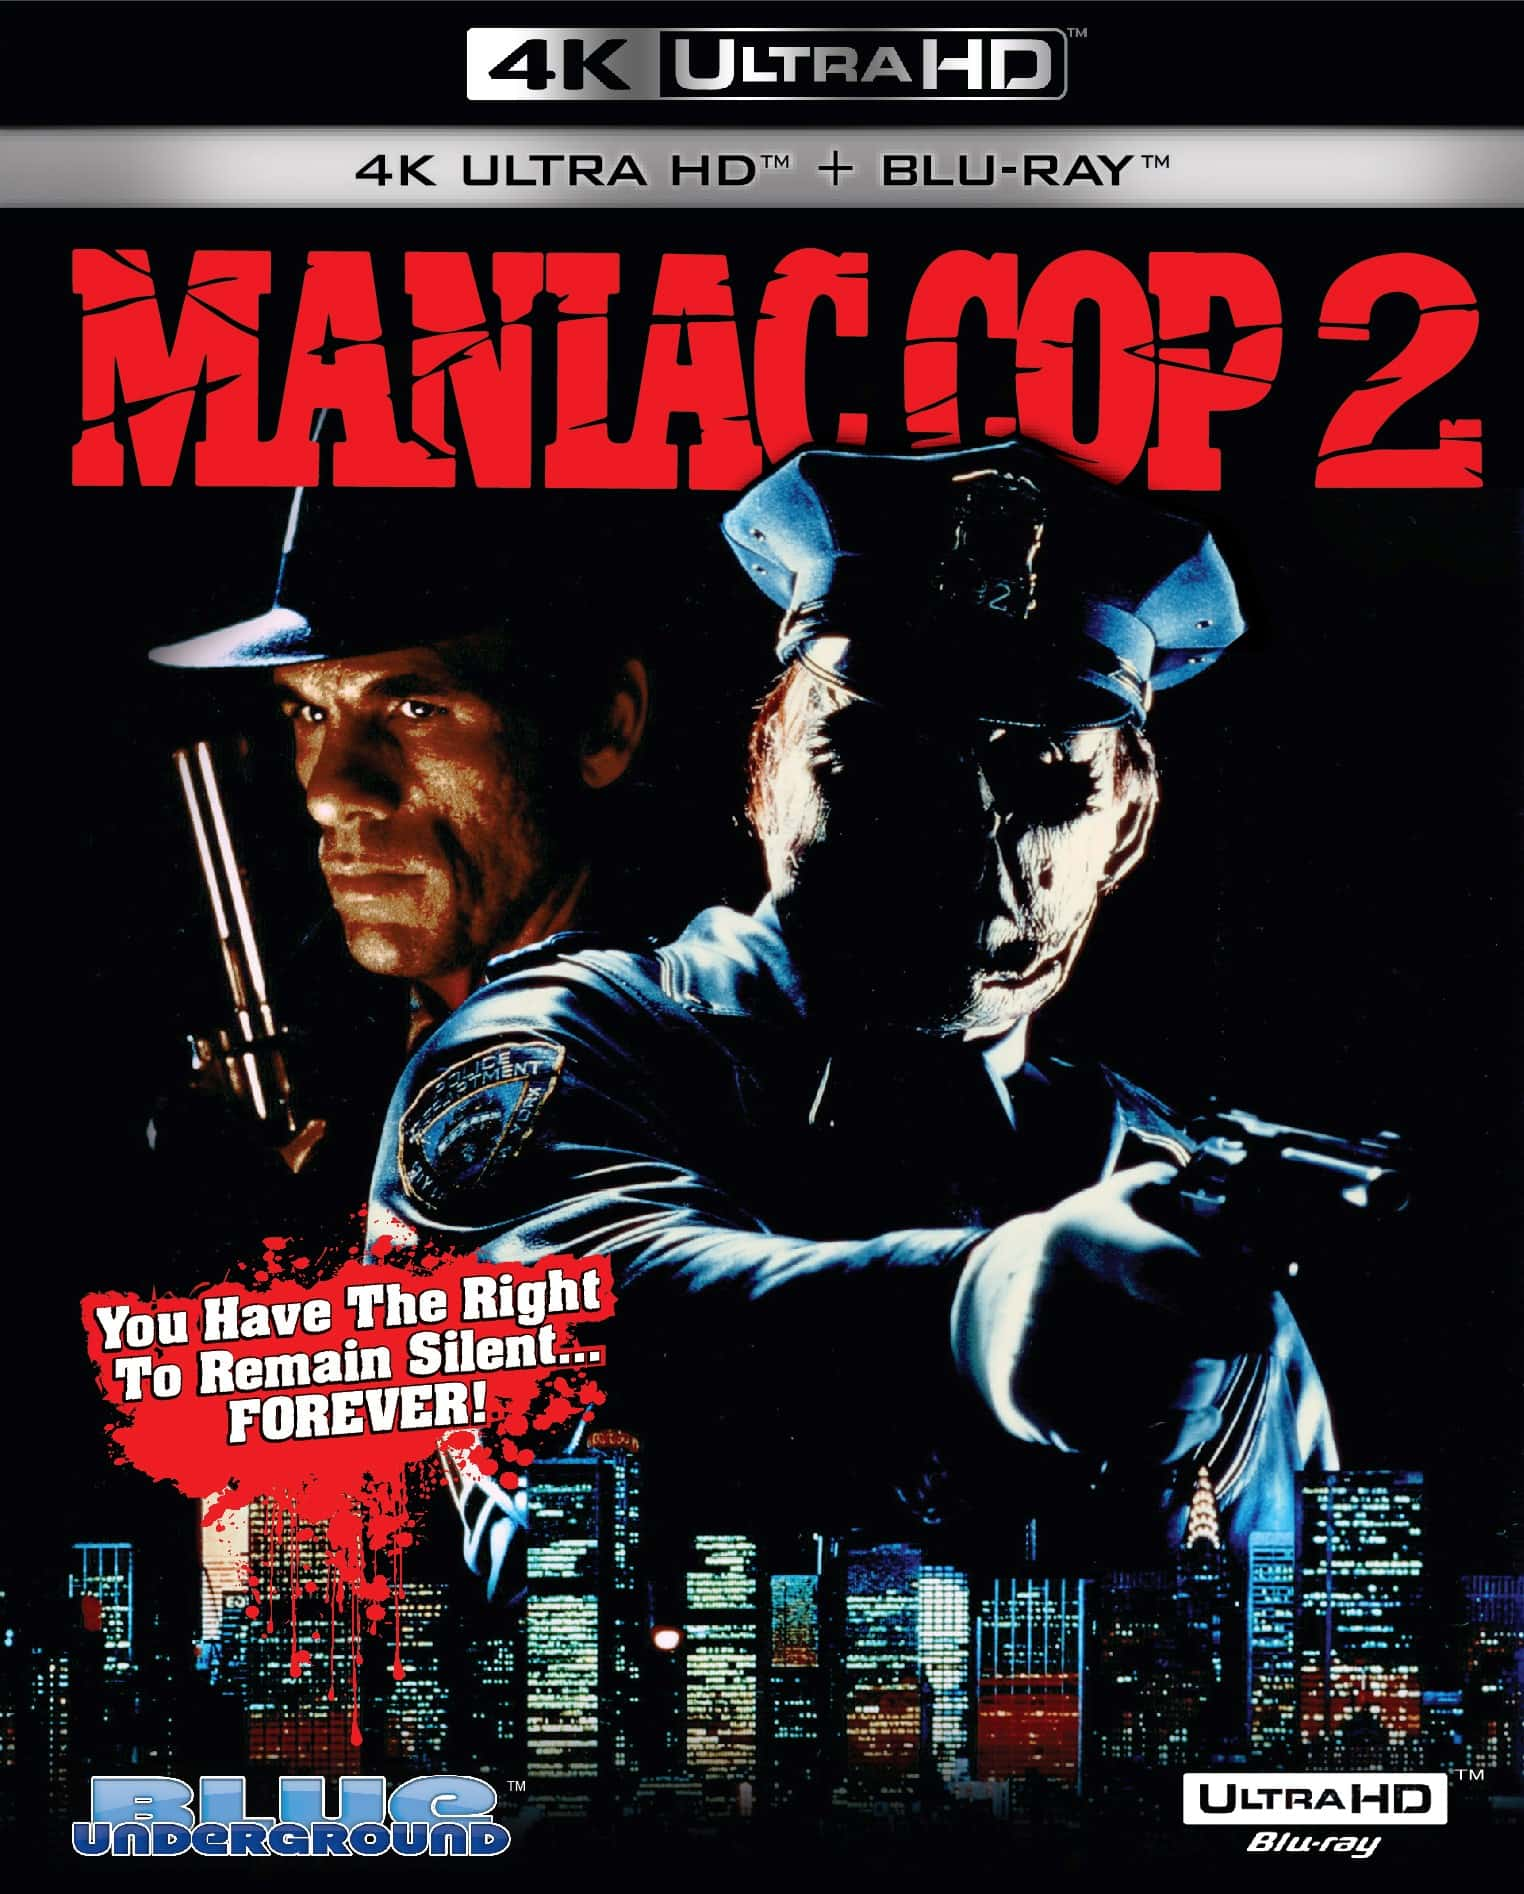 Maniac Cop 2 and 3 will demolish October 2021 with its groundbreaking 4K release 2